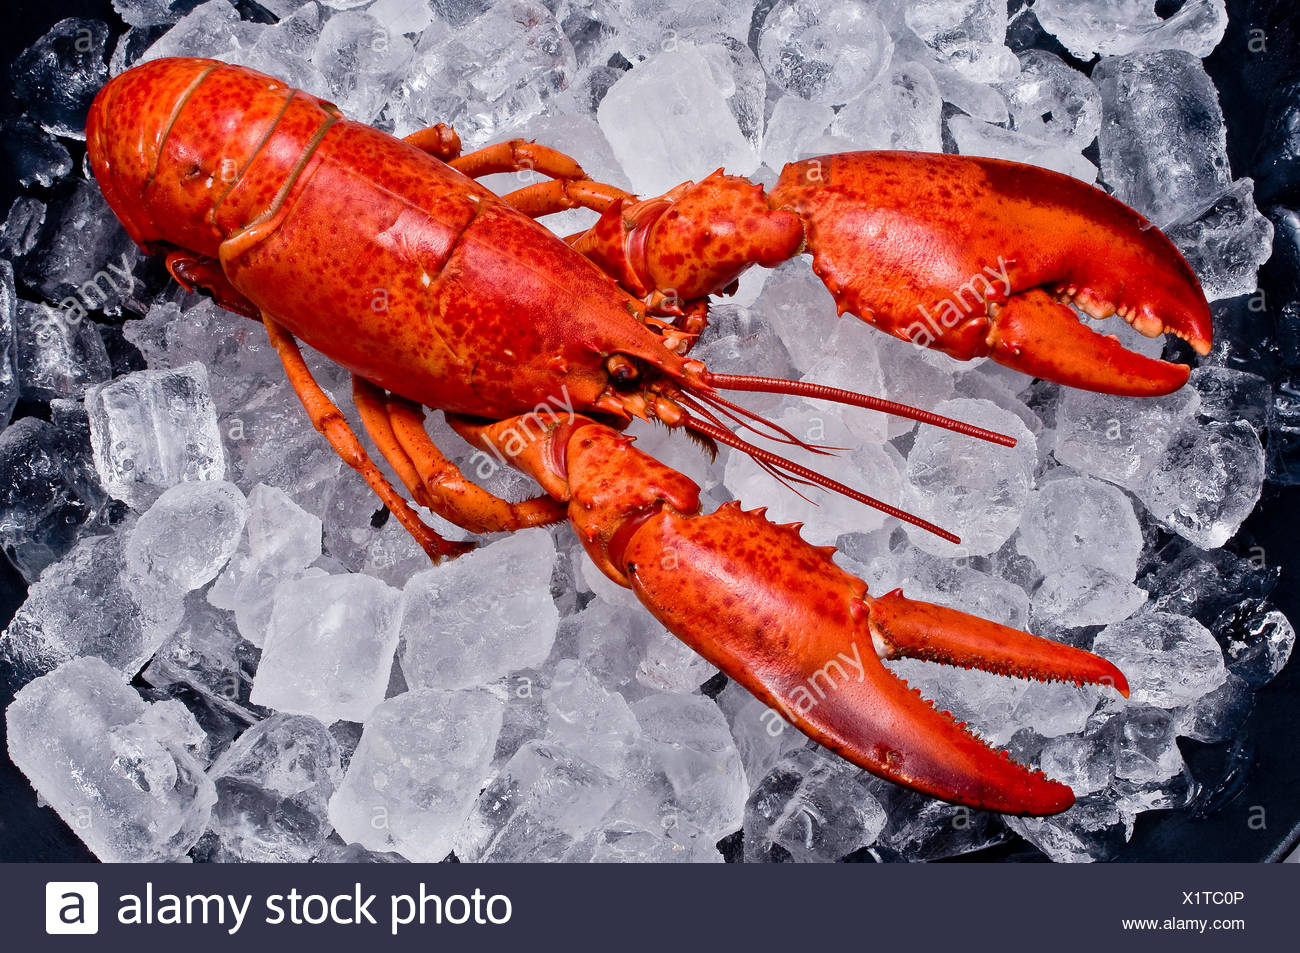 Lobster on ice - Stock Image